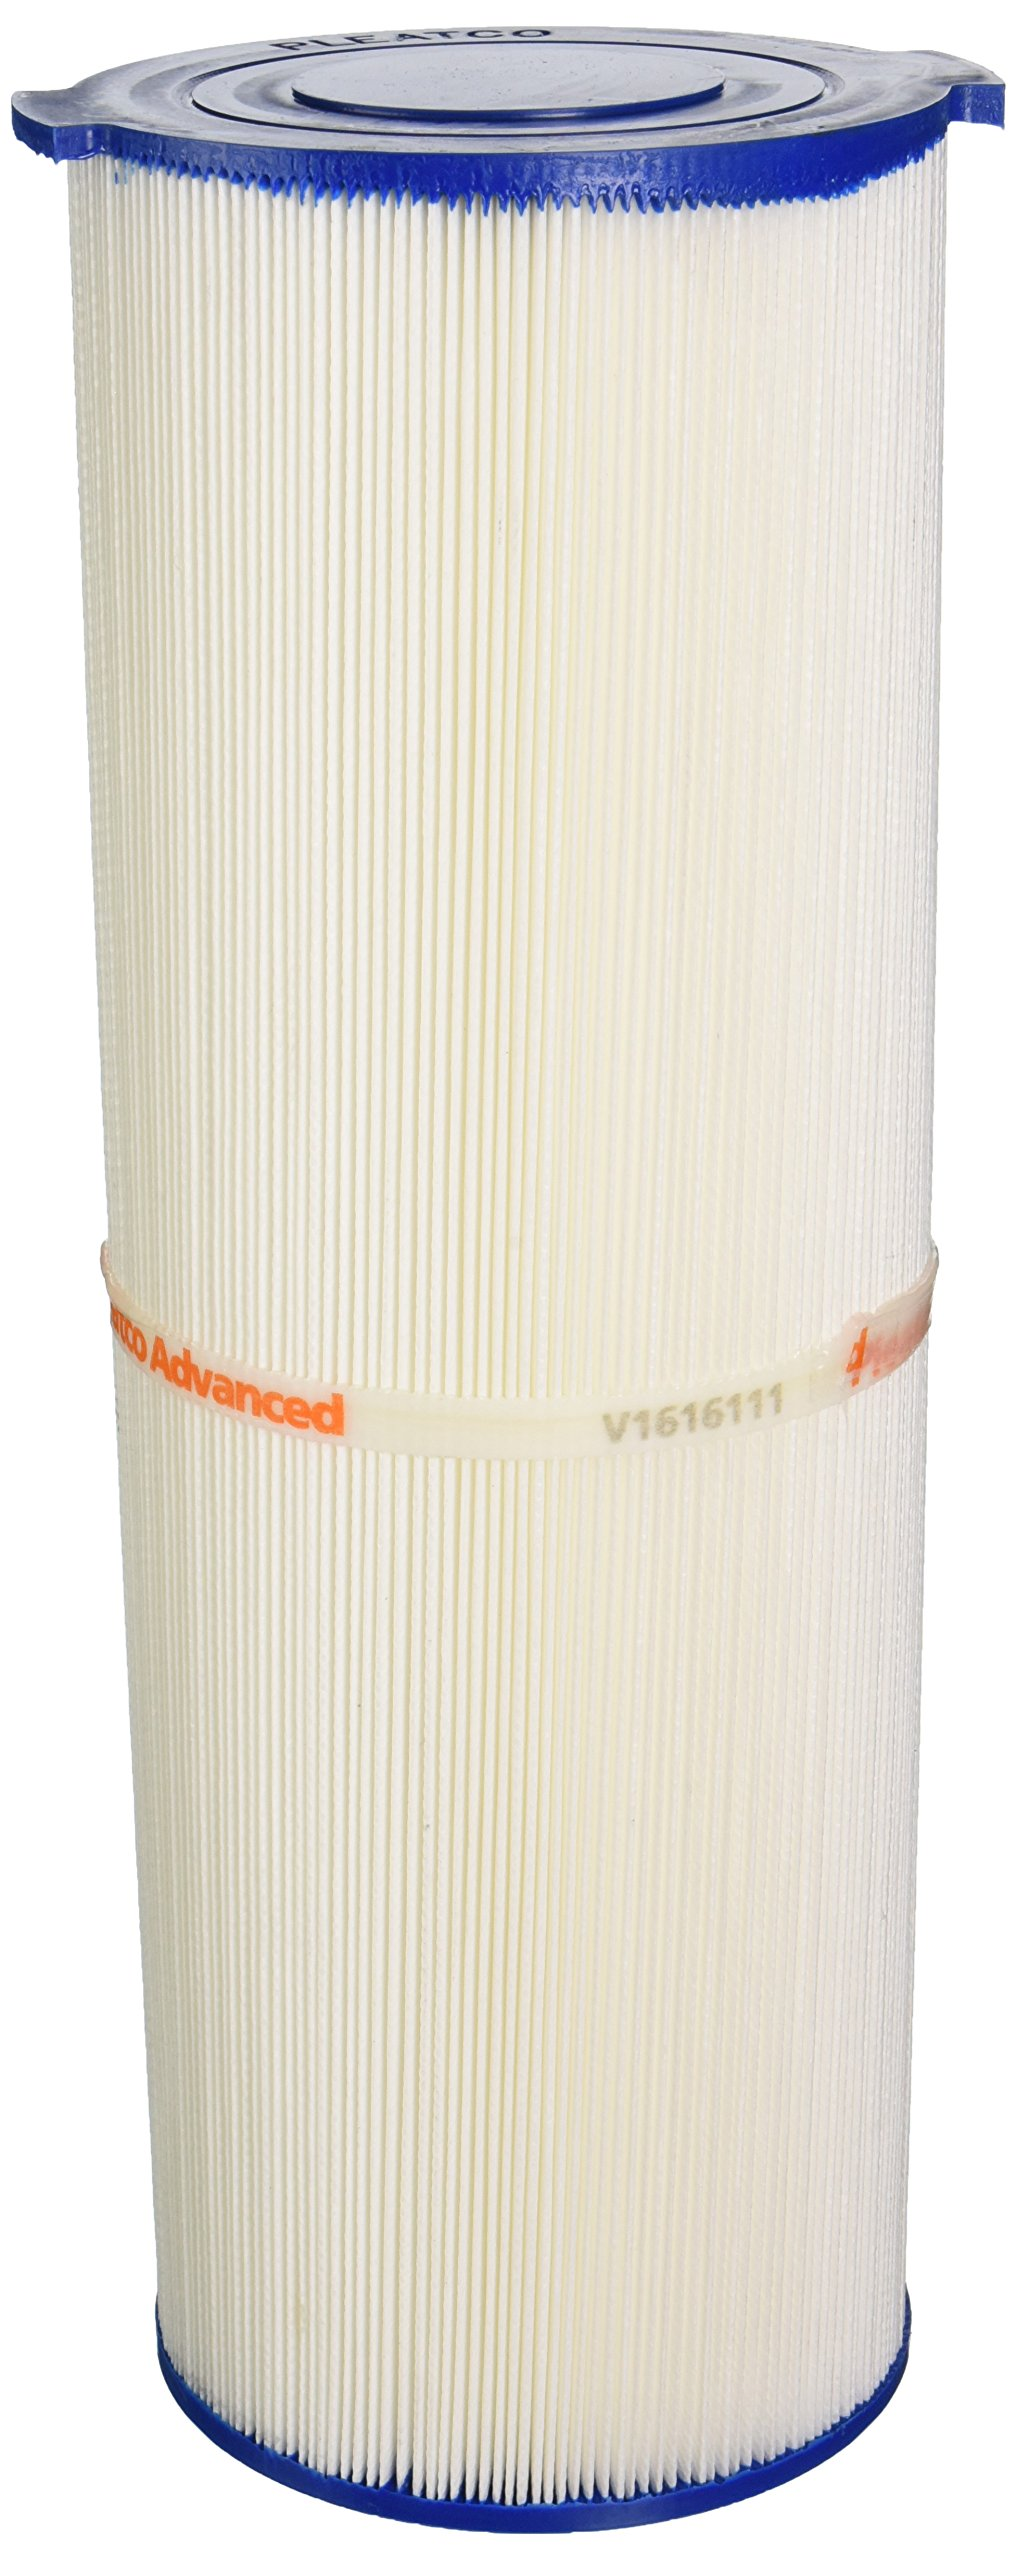 Pleatco PST45 Replacement Cartridge for Santana 45; C/Top, 1 Cartridge